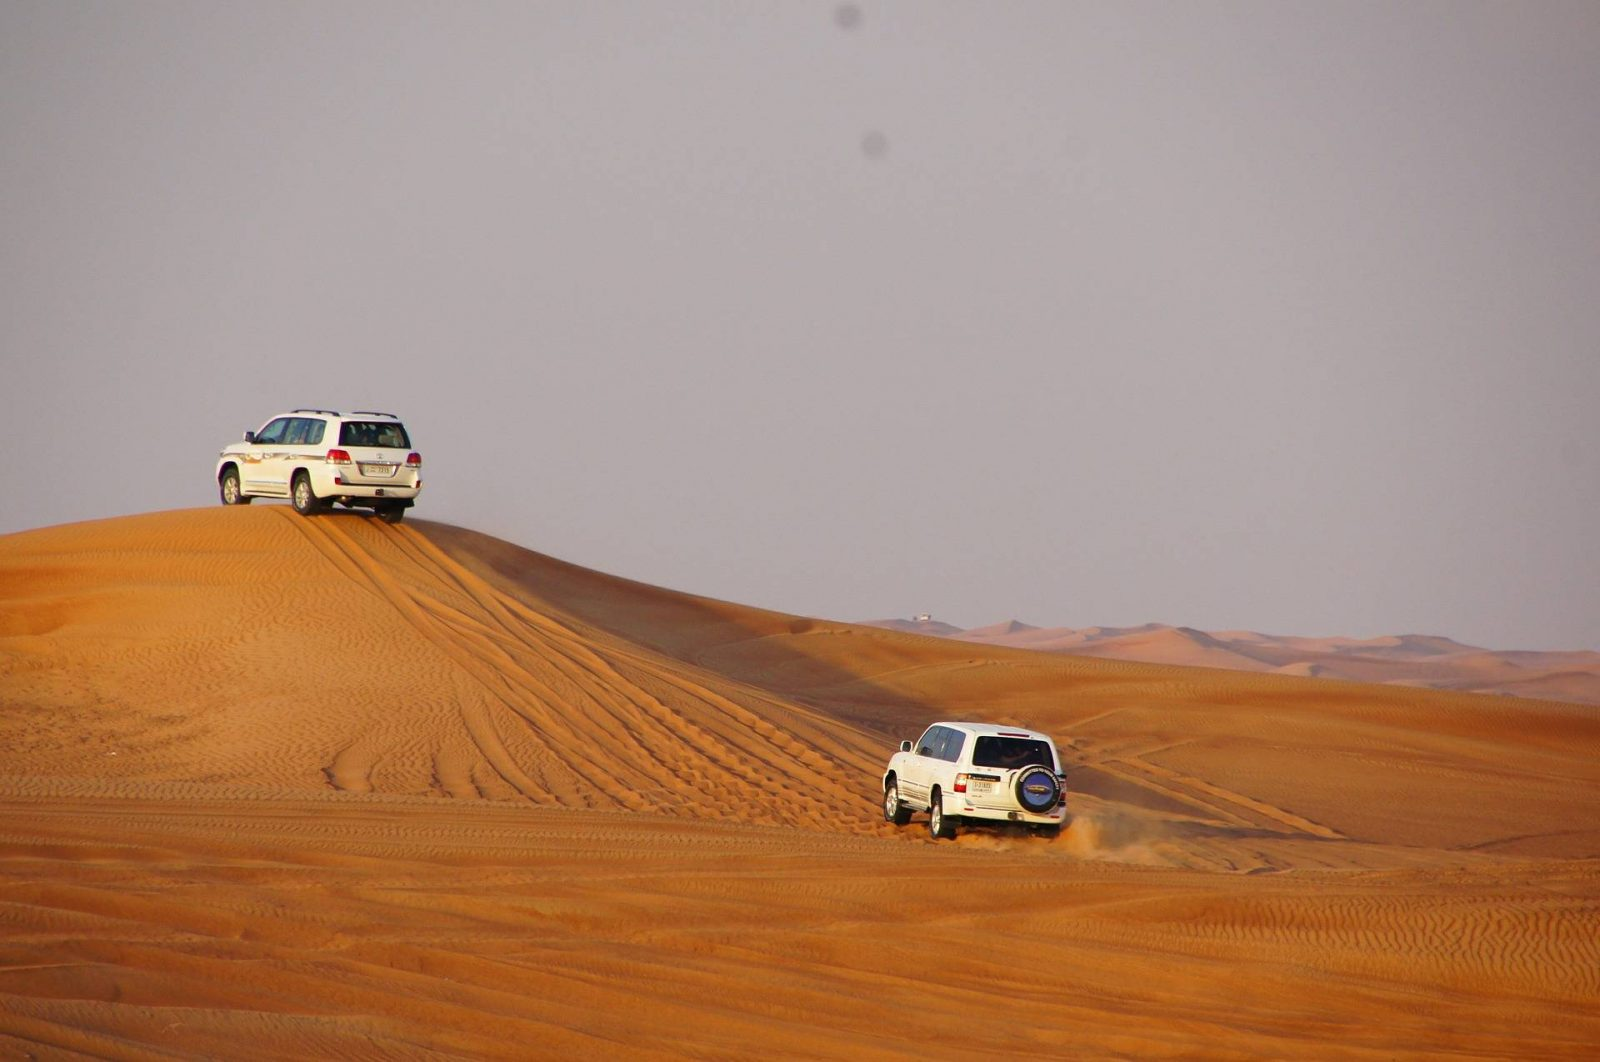 6 things to do in Abu Dhabi, desert safari